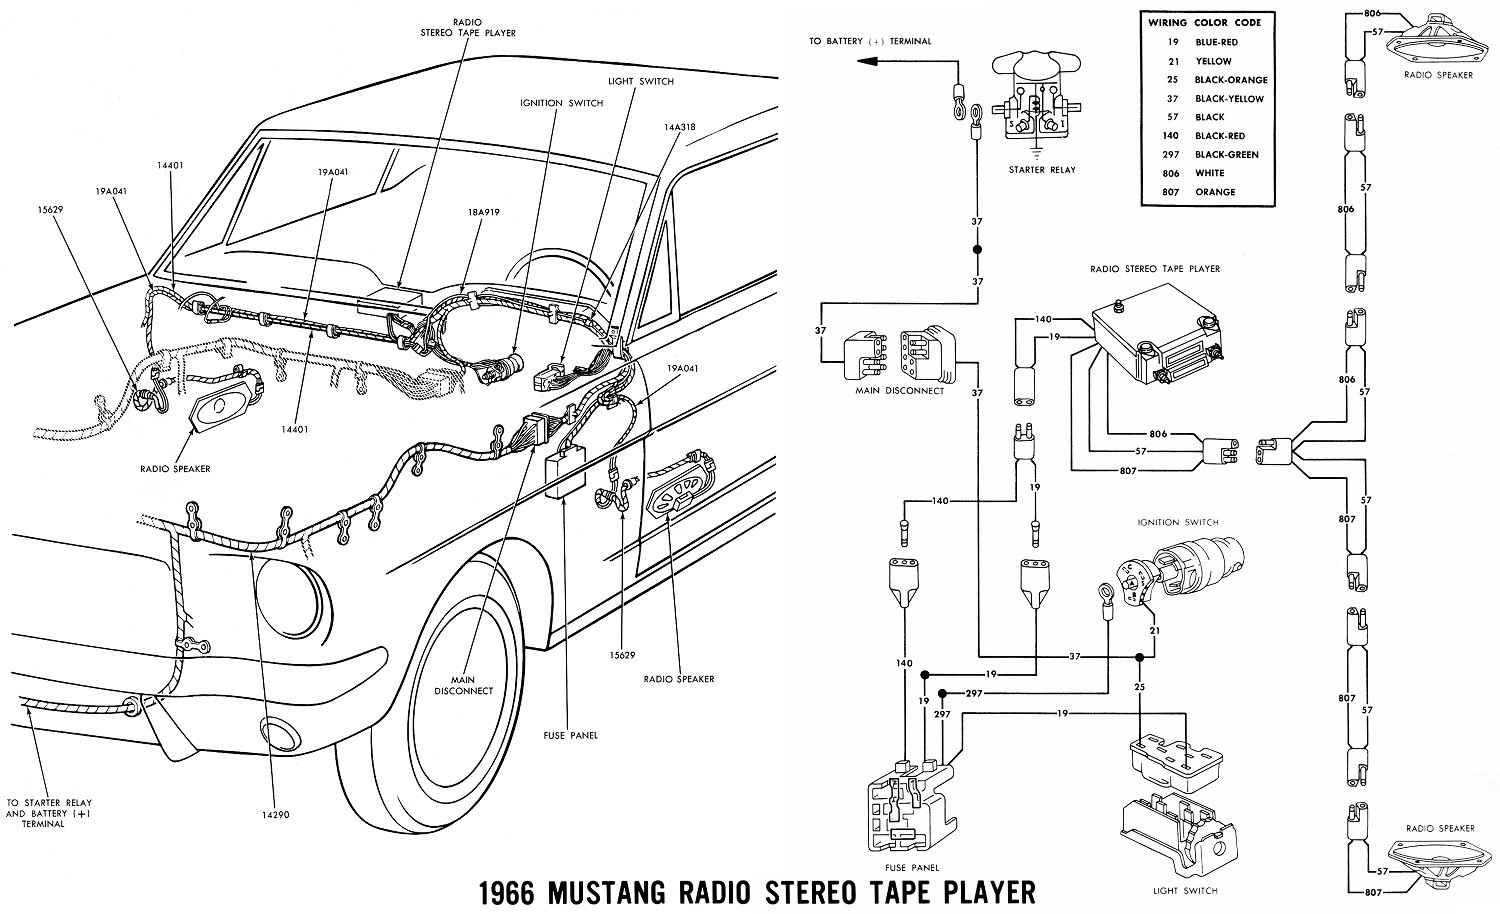 1965 Fender Mustang Wiring Diagram Pictures to Pin on Pinterest ...